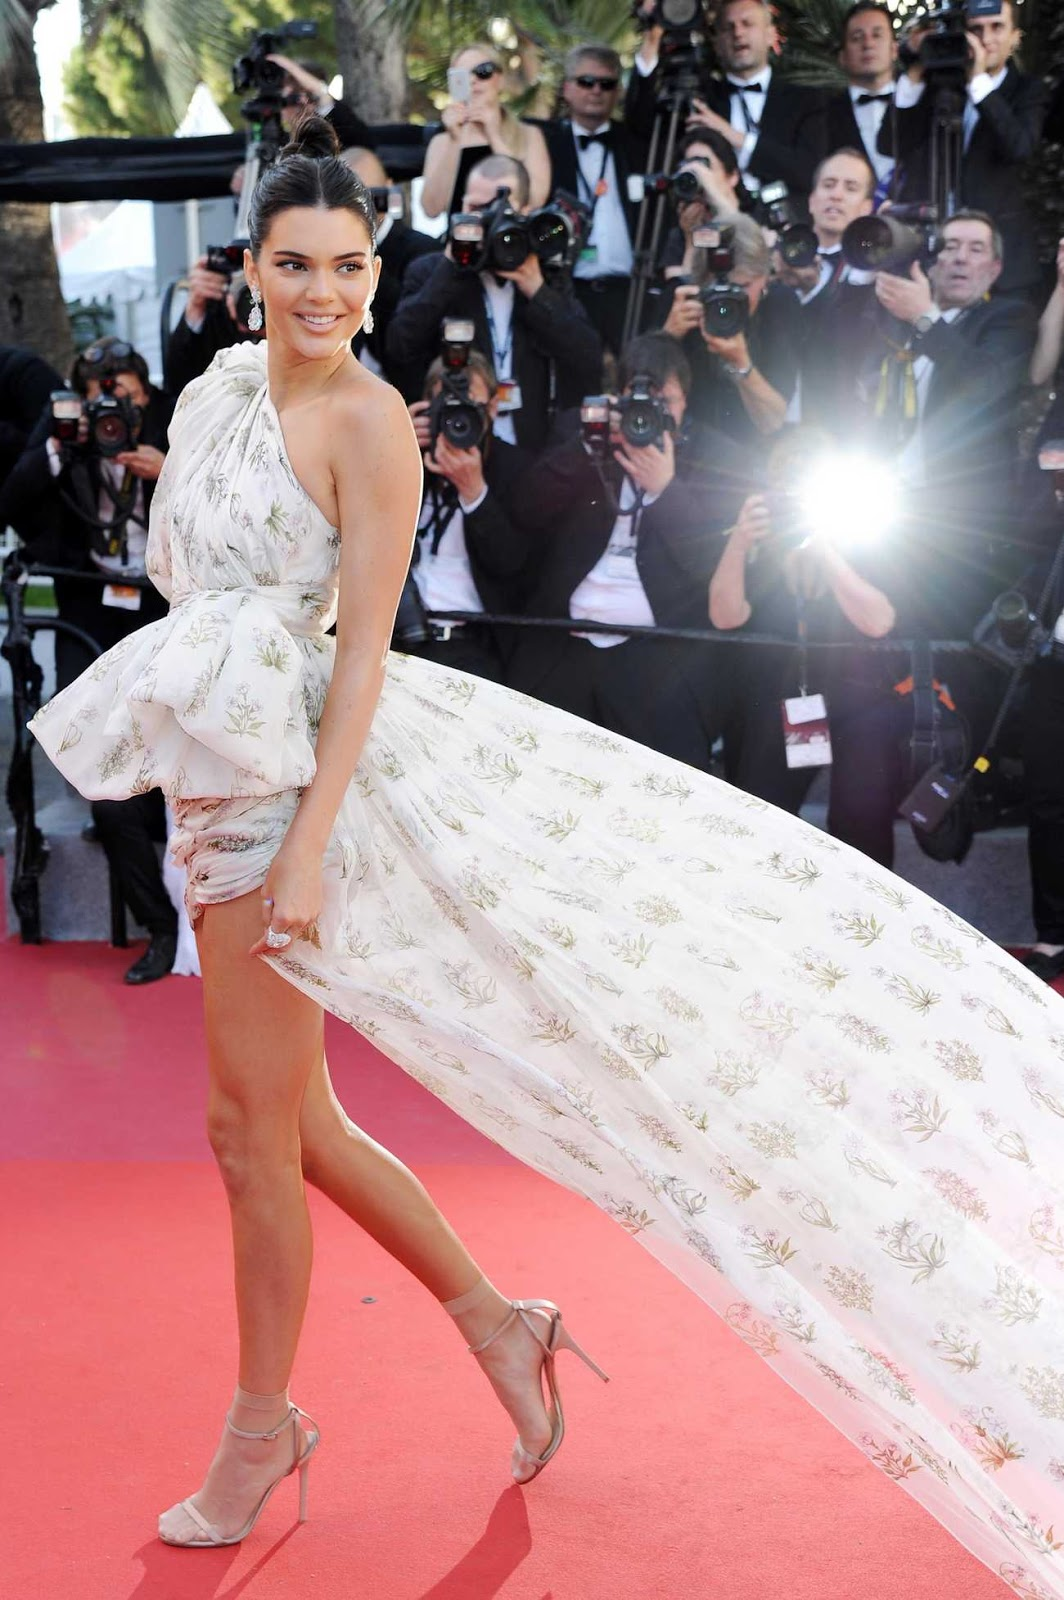 Kendall Jenner puts legs on show in billowing mini dress at the 2017 Cannes Film Festival